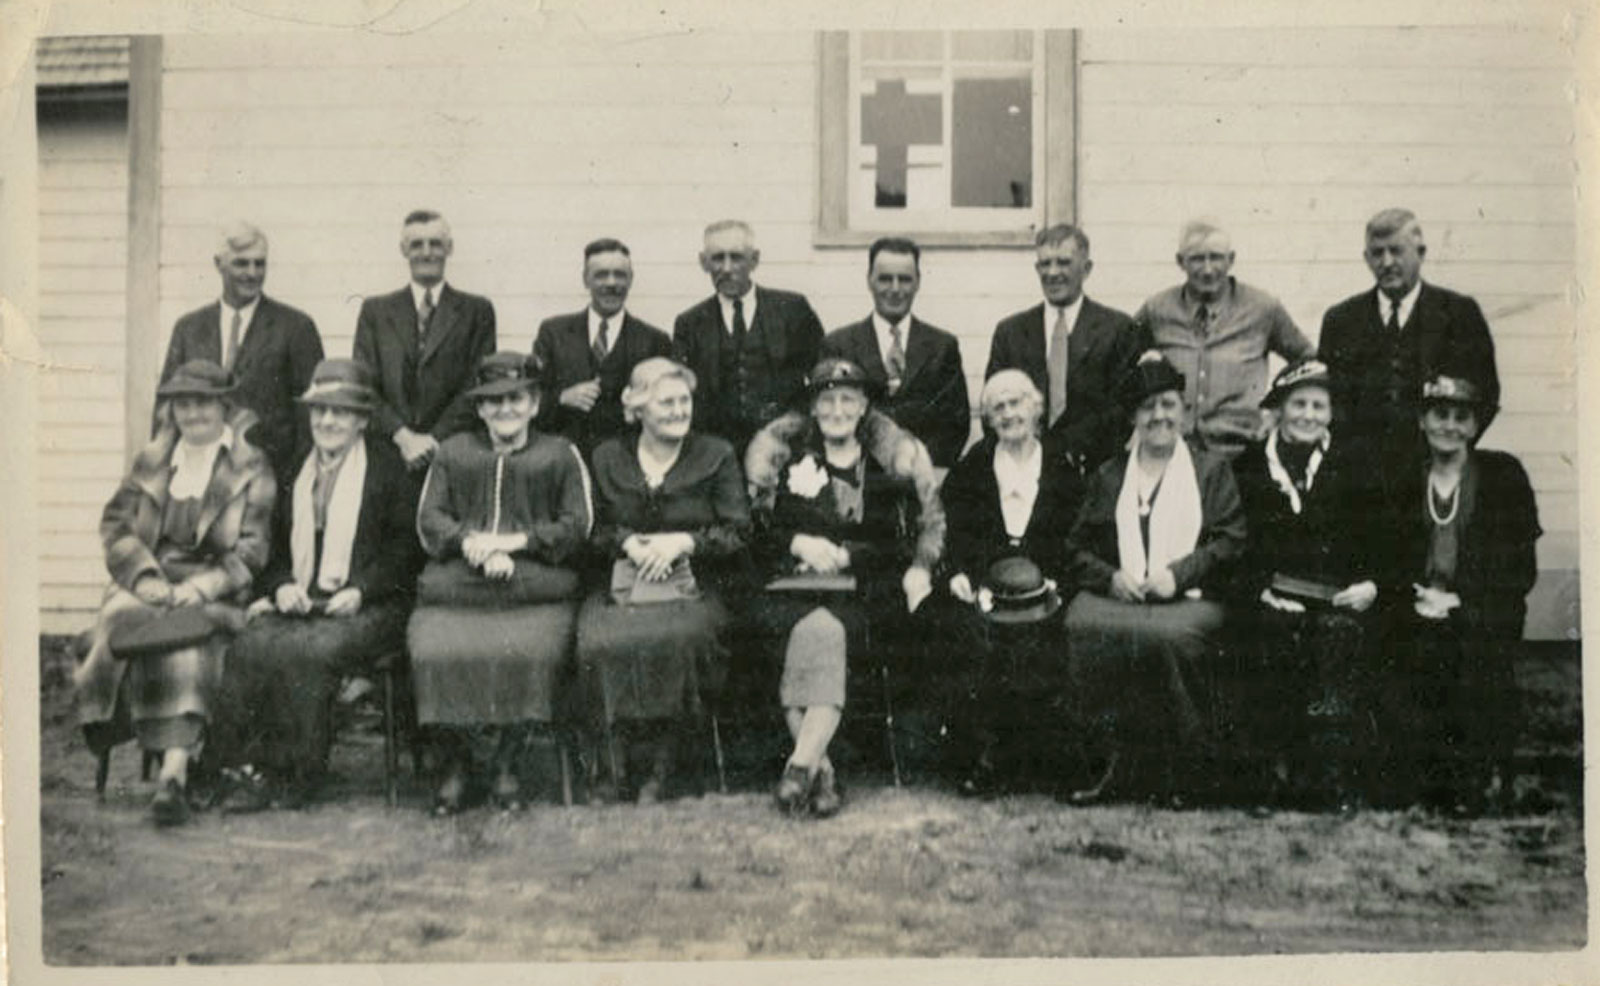 Iron Bridge United Church Reunion - Circa 1938